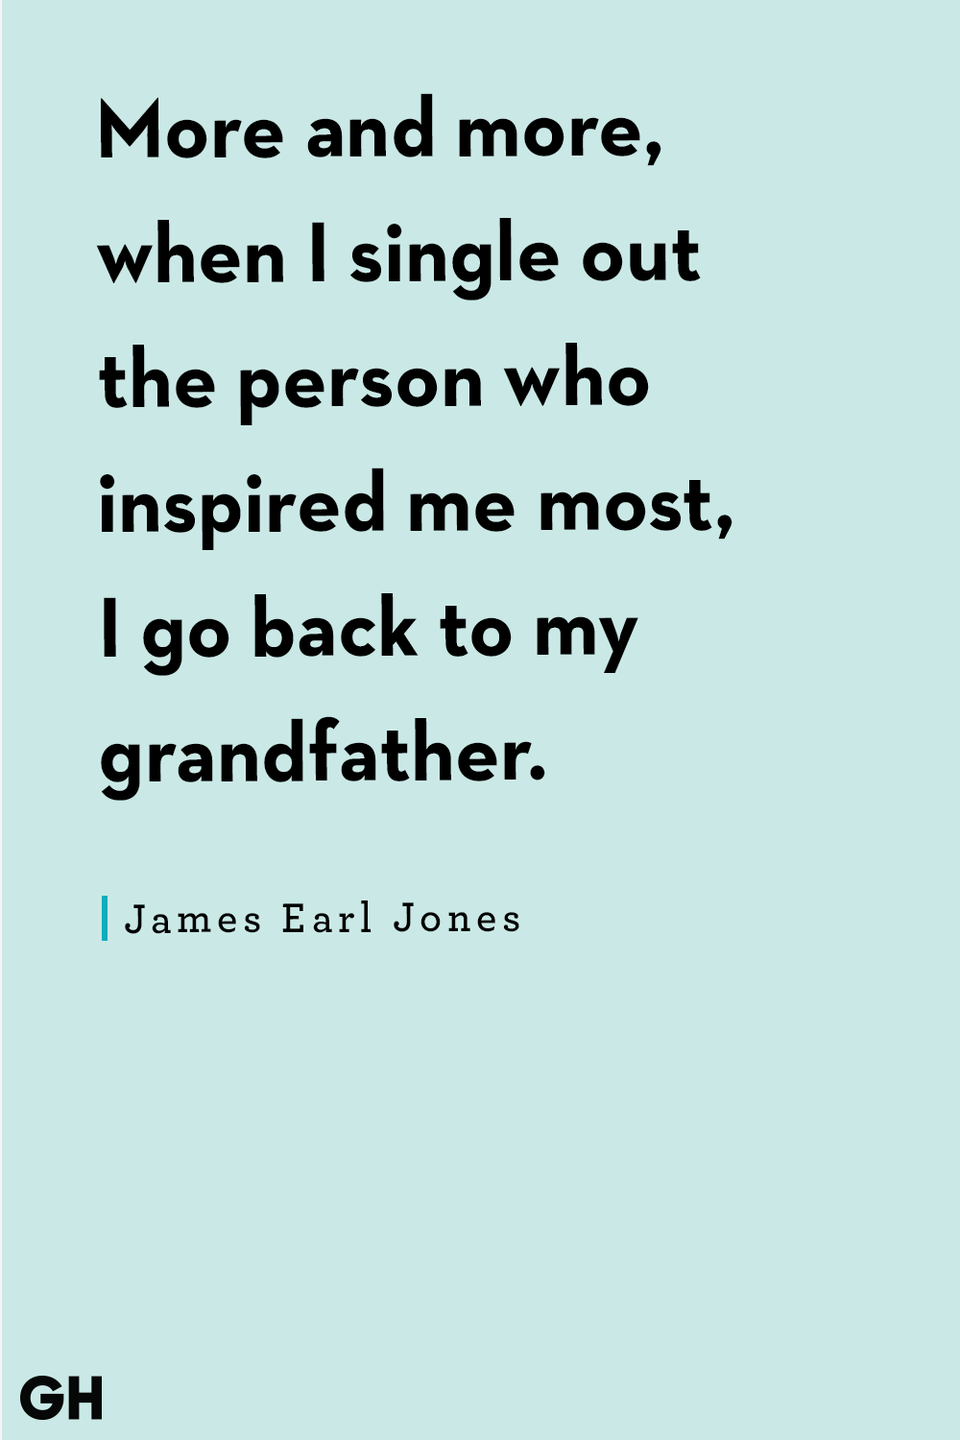 <p>More and more, when I single out the person out who inspired me most, I go back to my grandfather.</p>